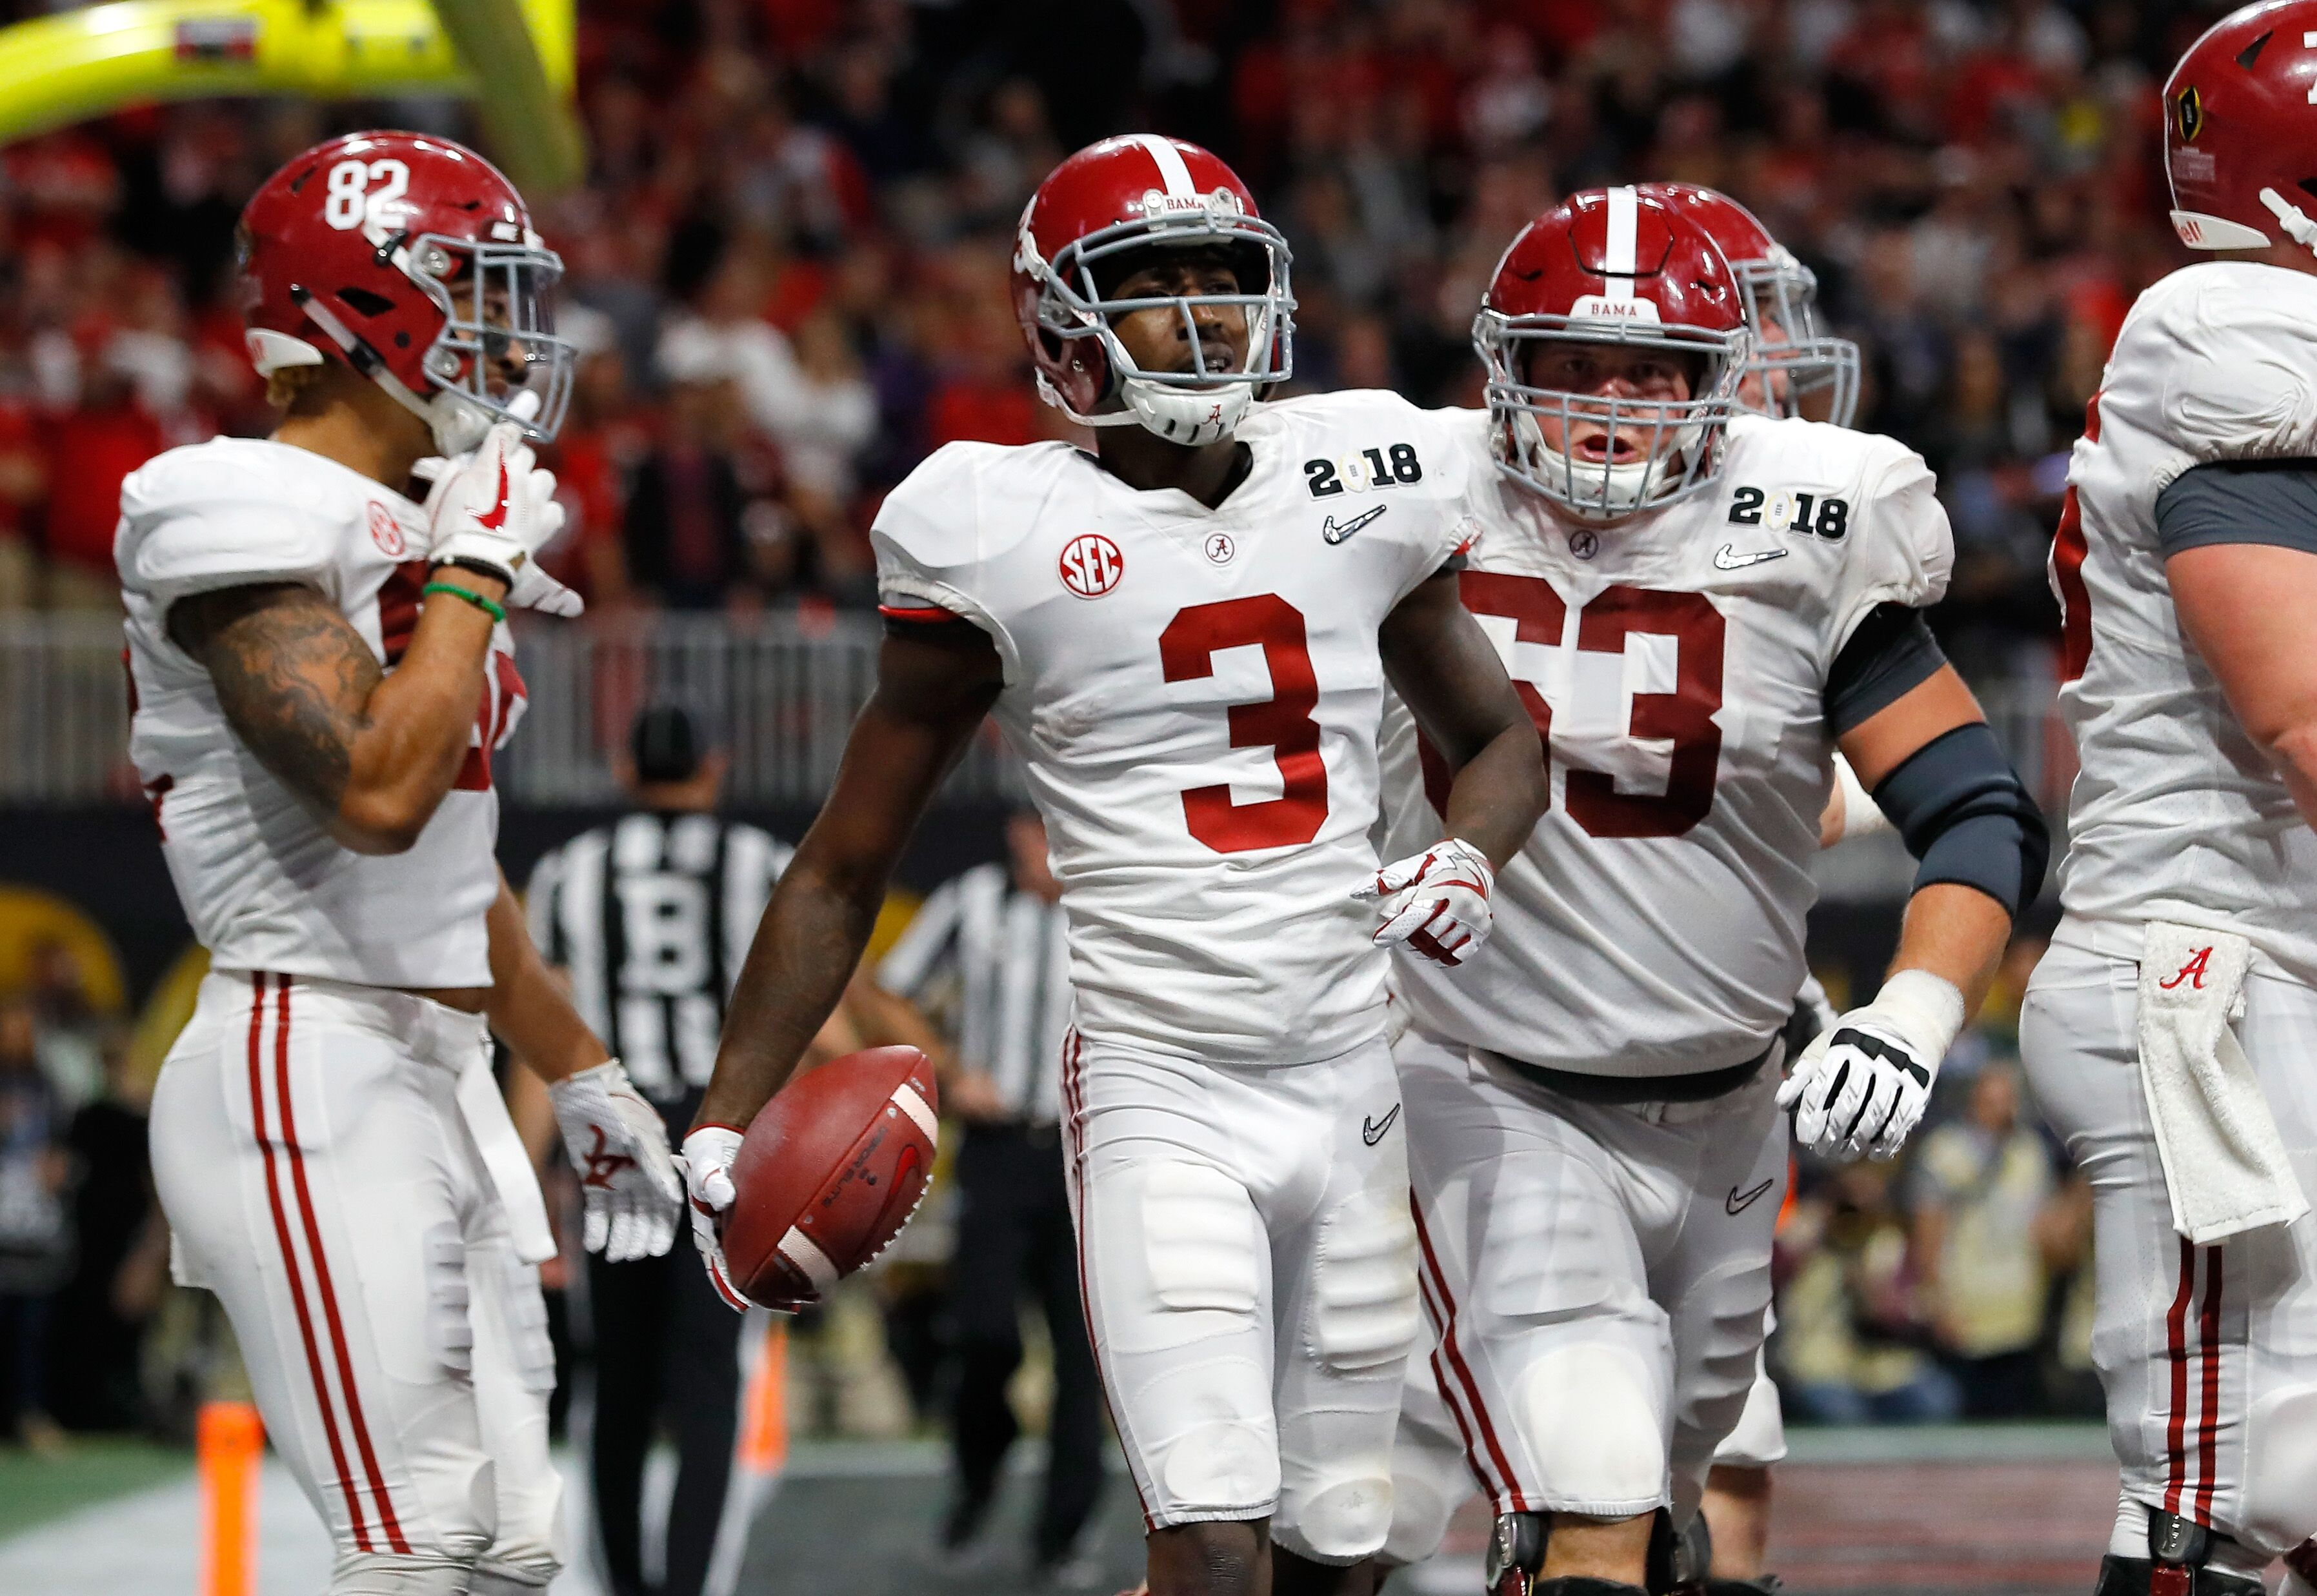 902781492-cfp-national-championship-presented-by-at.jpg